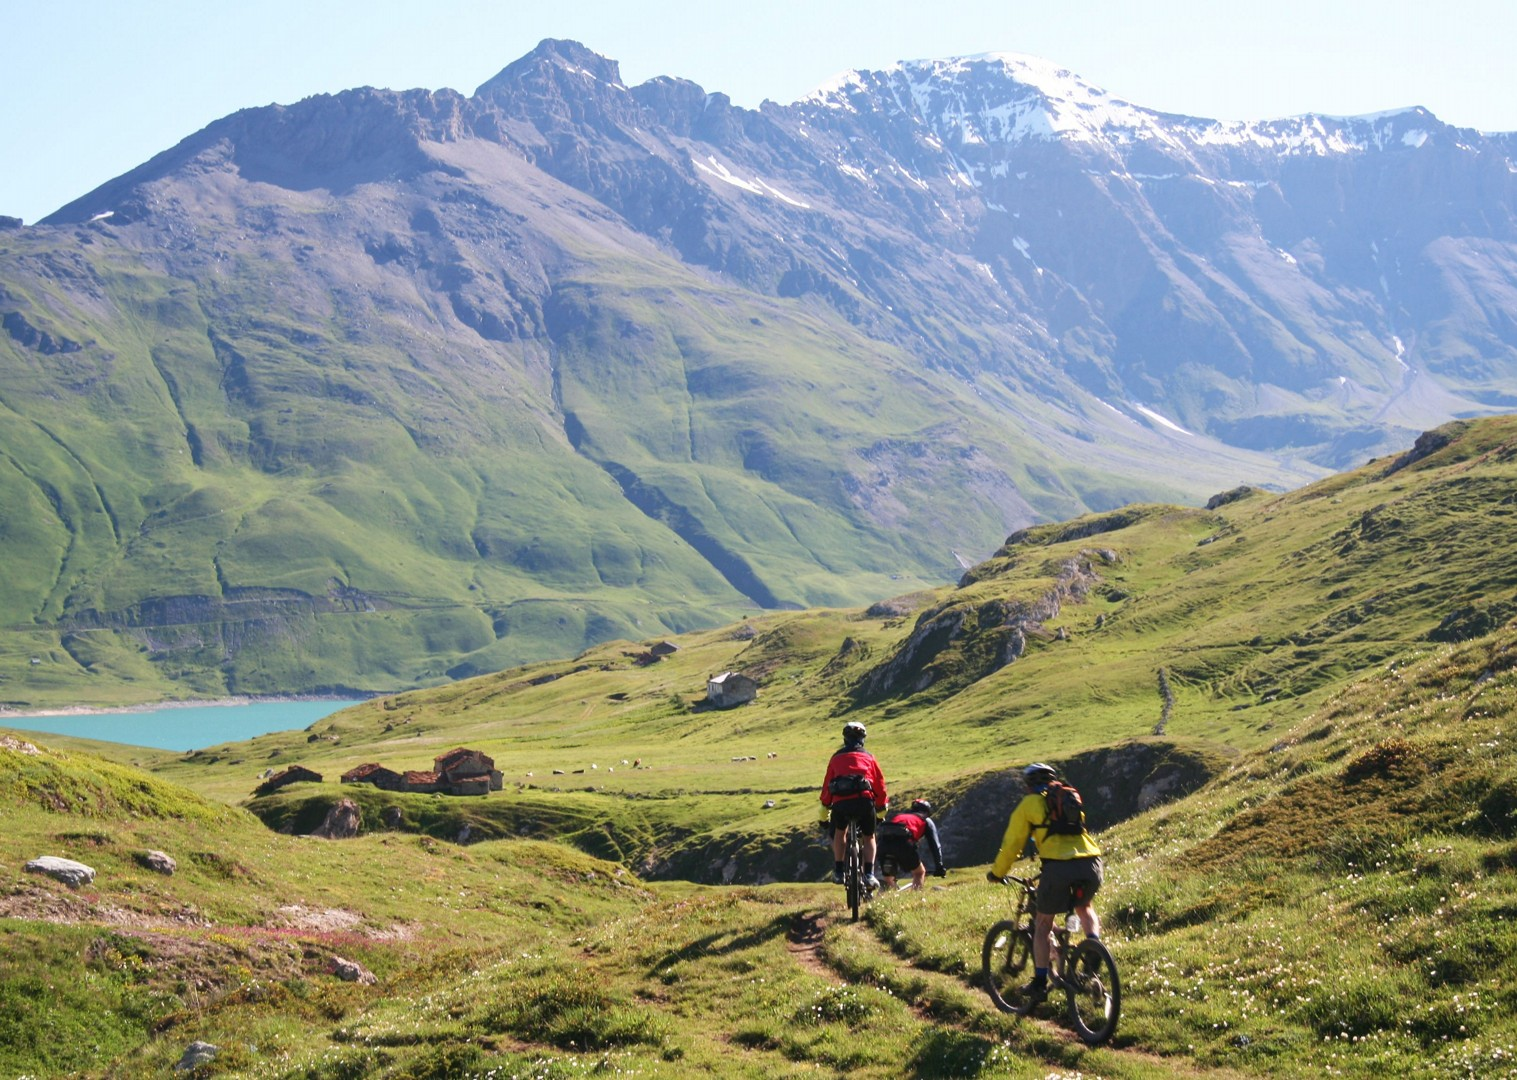 alps-mountain-bike-holiday-in-the-alps-alpine-adventure.JPG - Italy and France - Alpine Adventure - Mountain Biking